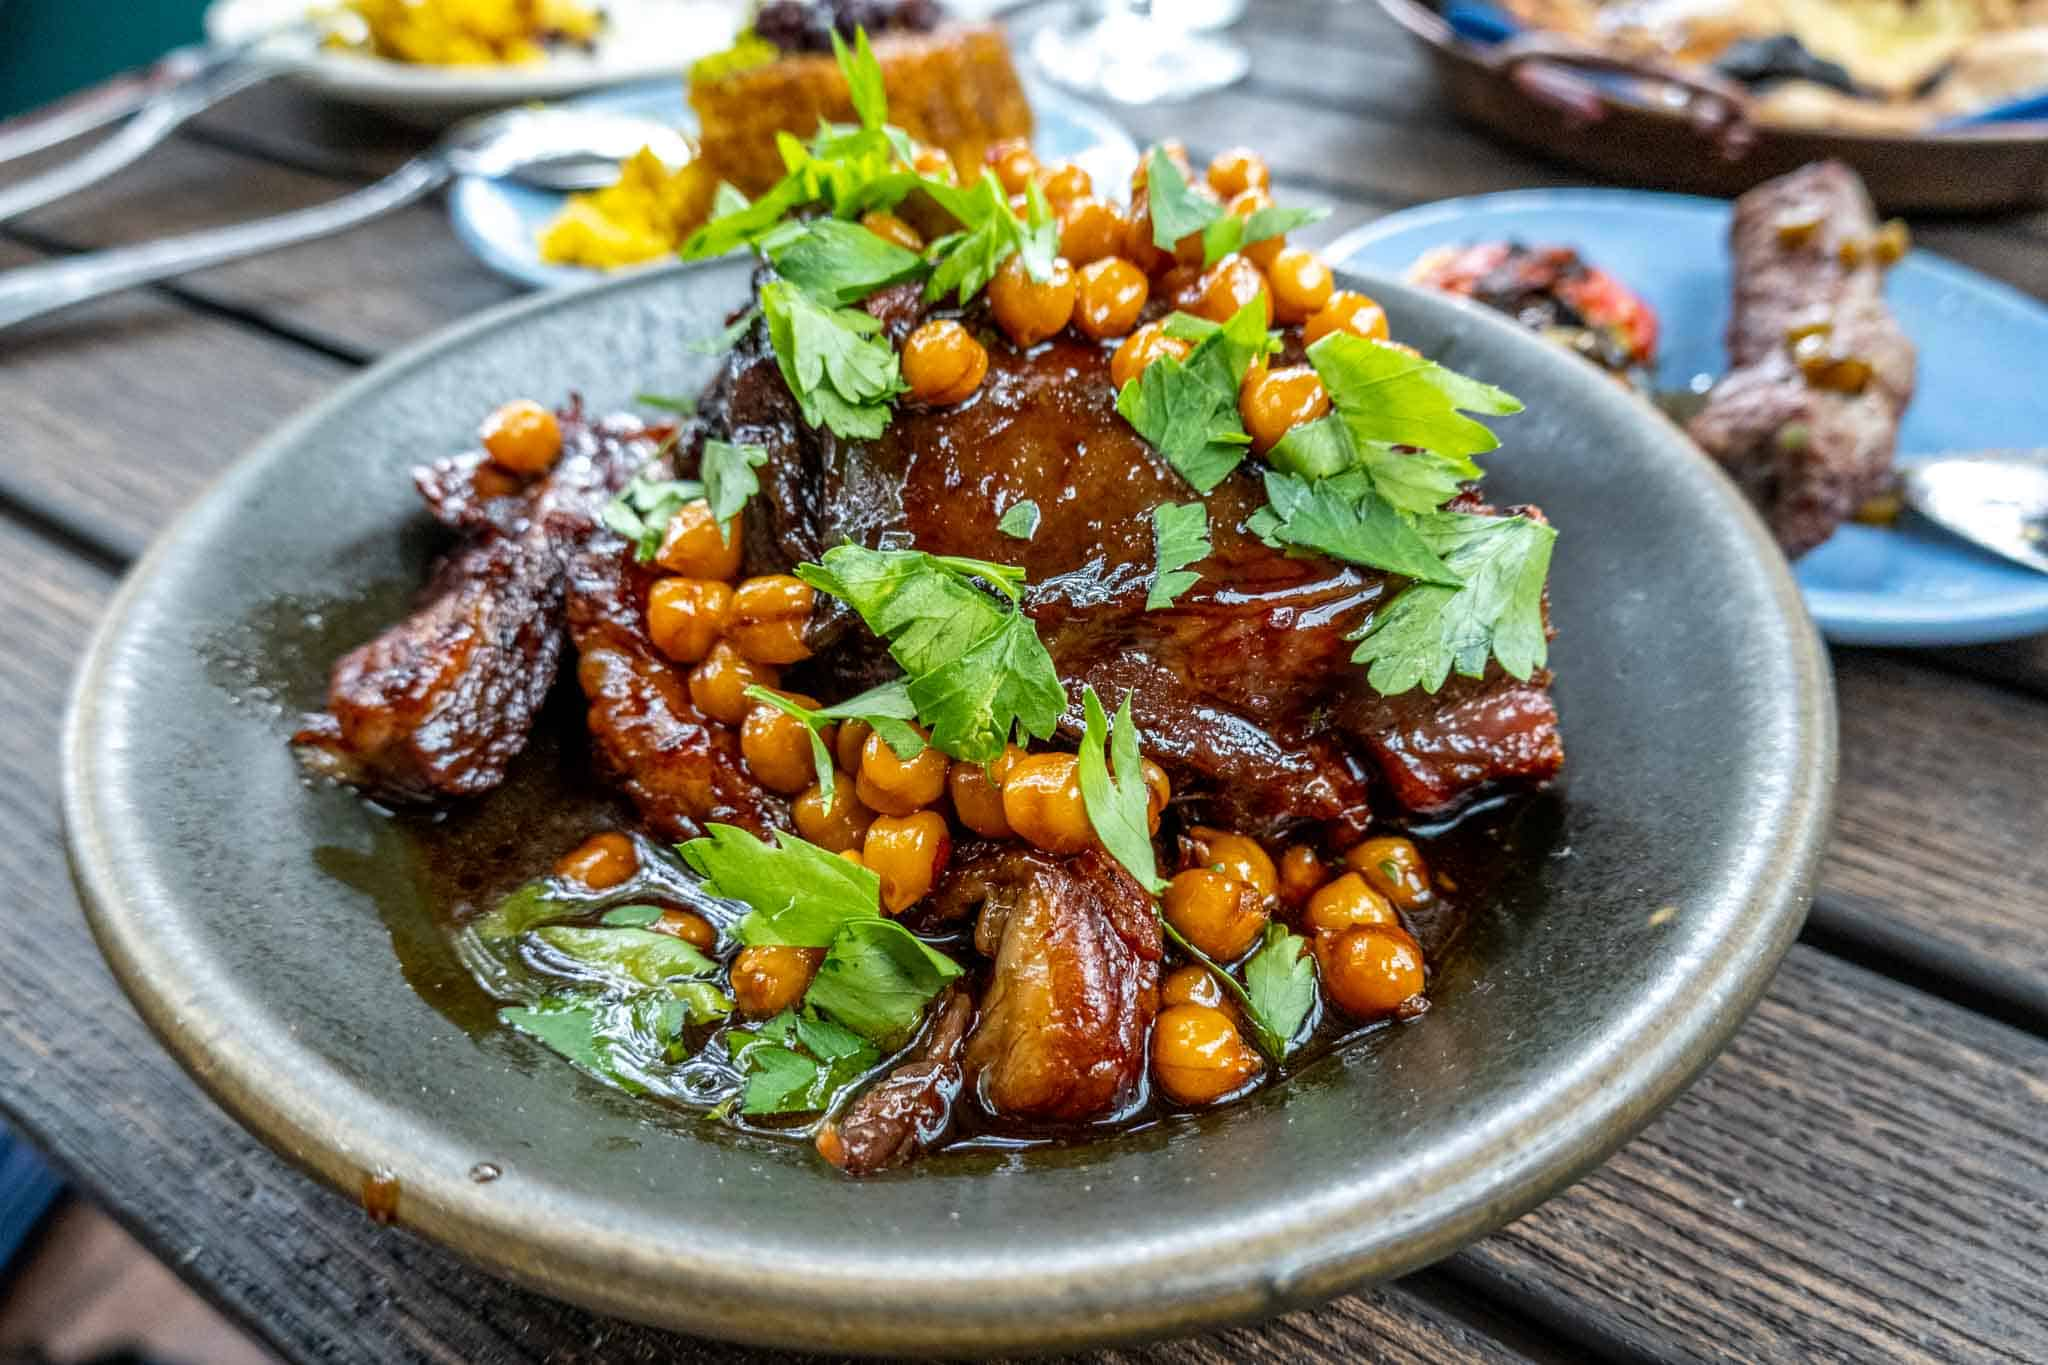 Roasted lamb topped with chickpeas and cilantro in a bowl